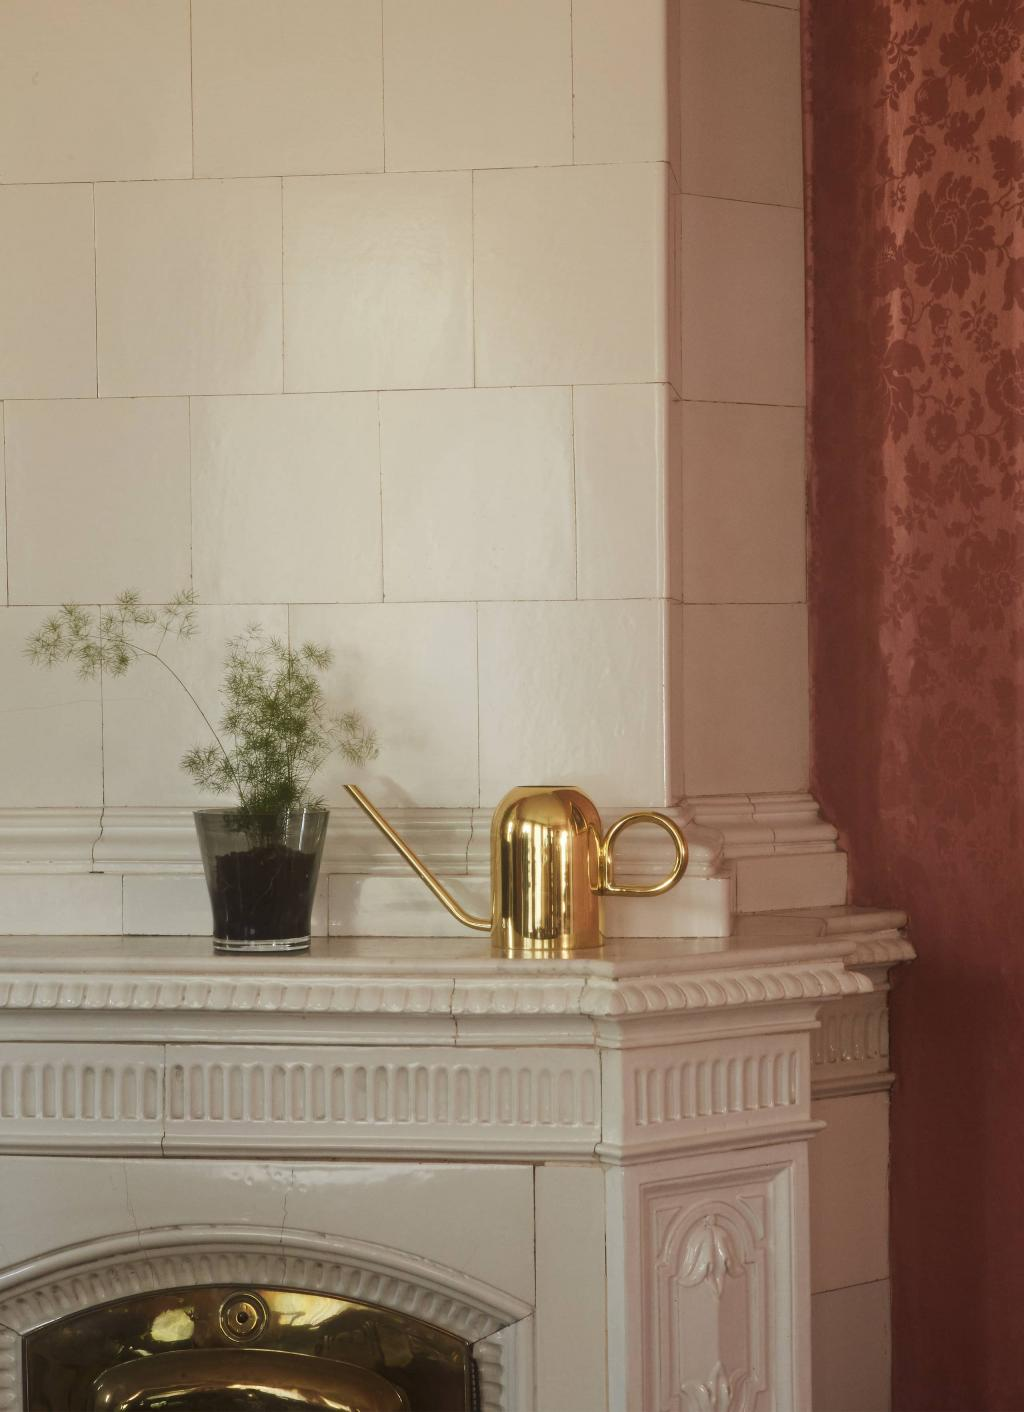 Aytm - Vivero - Watering Can - Brass